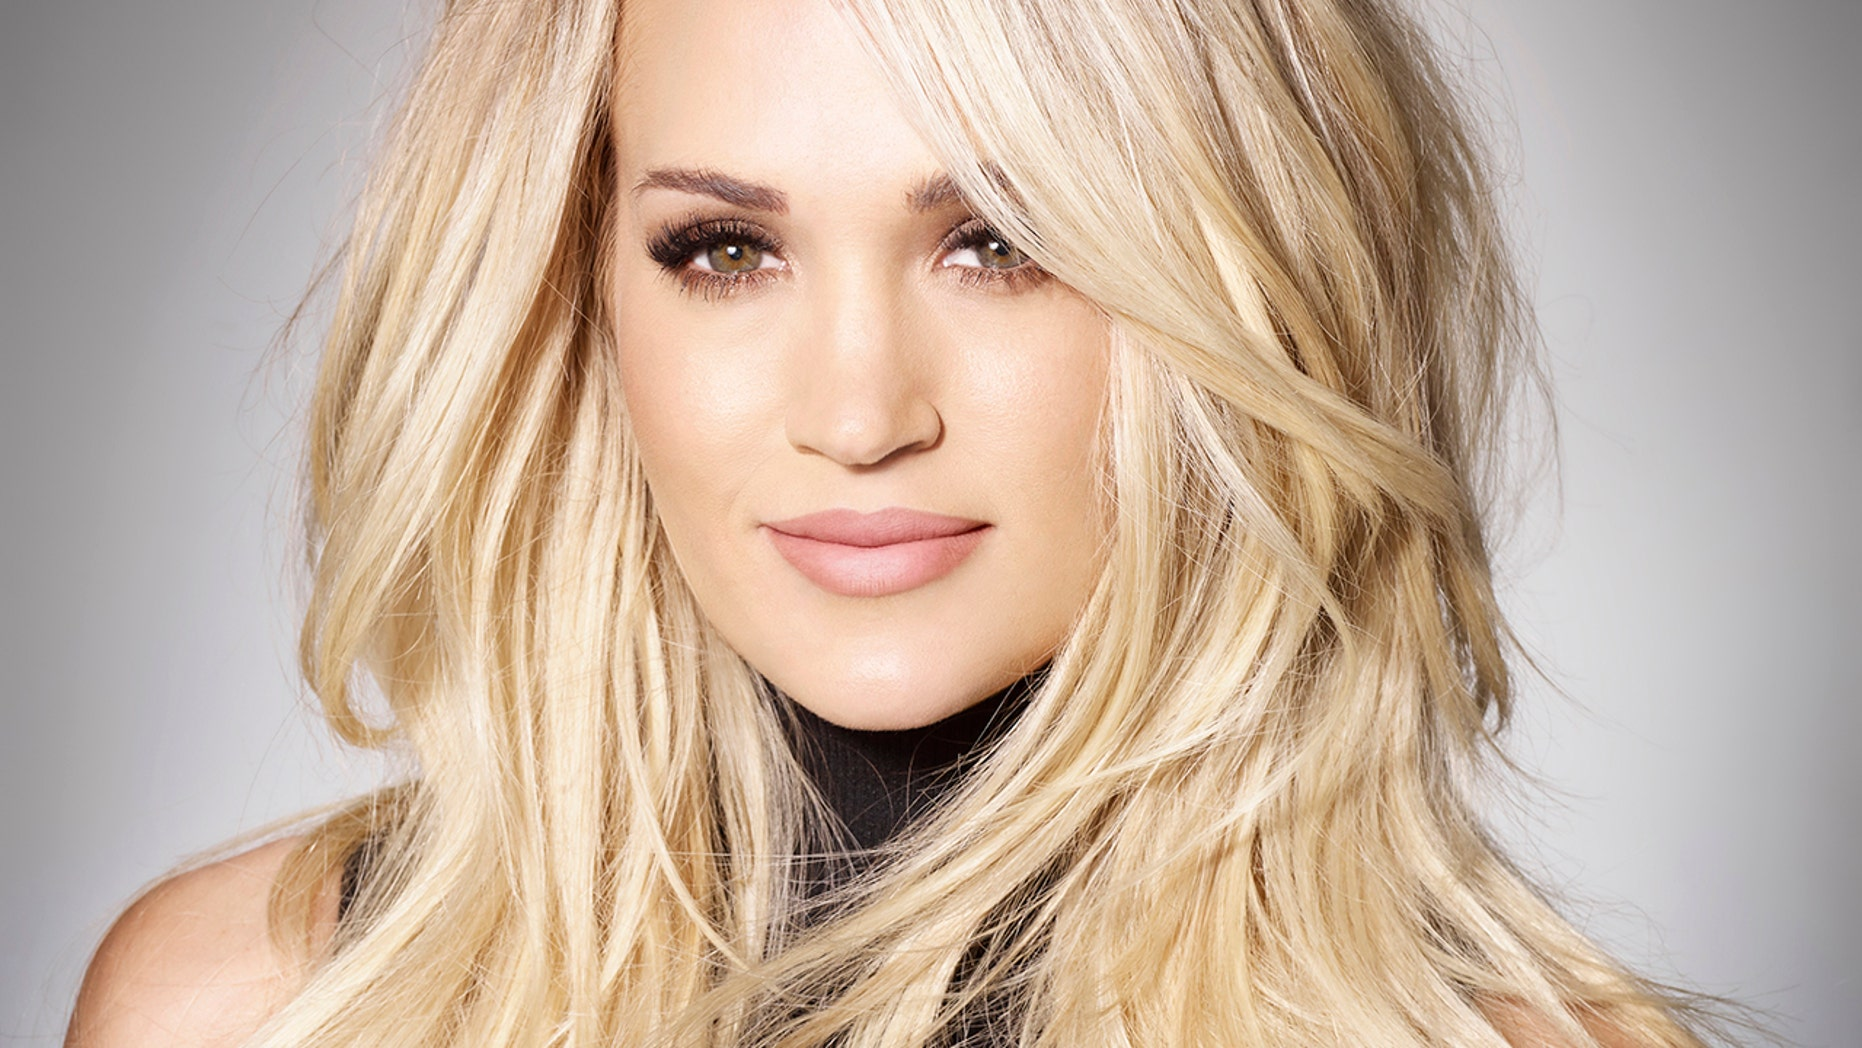 Carrie Underwood has a chance to extend her run as the most decorated artist in the history of the CMT Music Awards. The country star has 17 wins and she's nominated for three awards at the Wednesday, June 6, 2018, show which kicks off from the Bridgestone Arena.